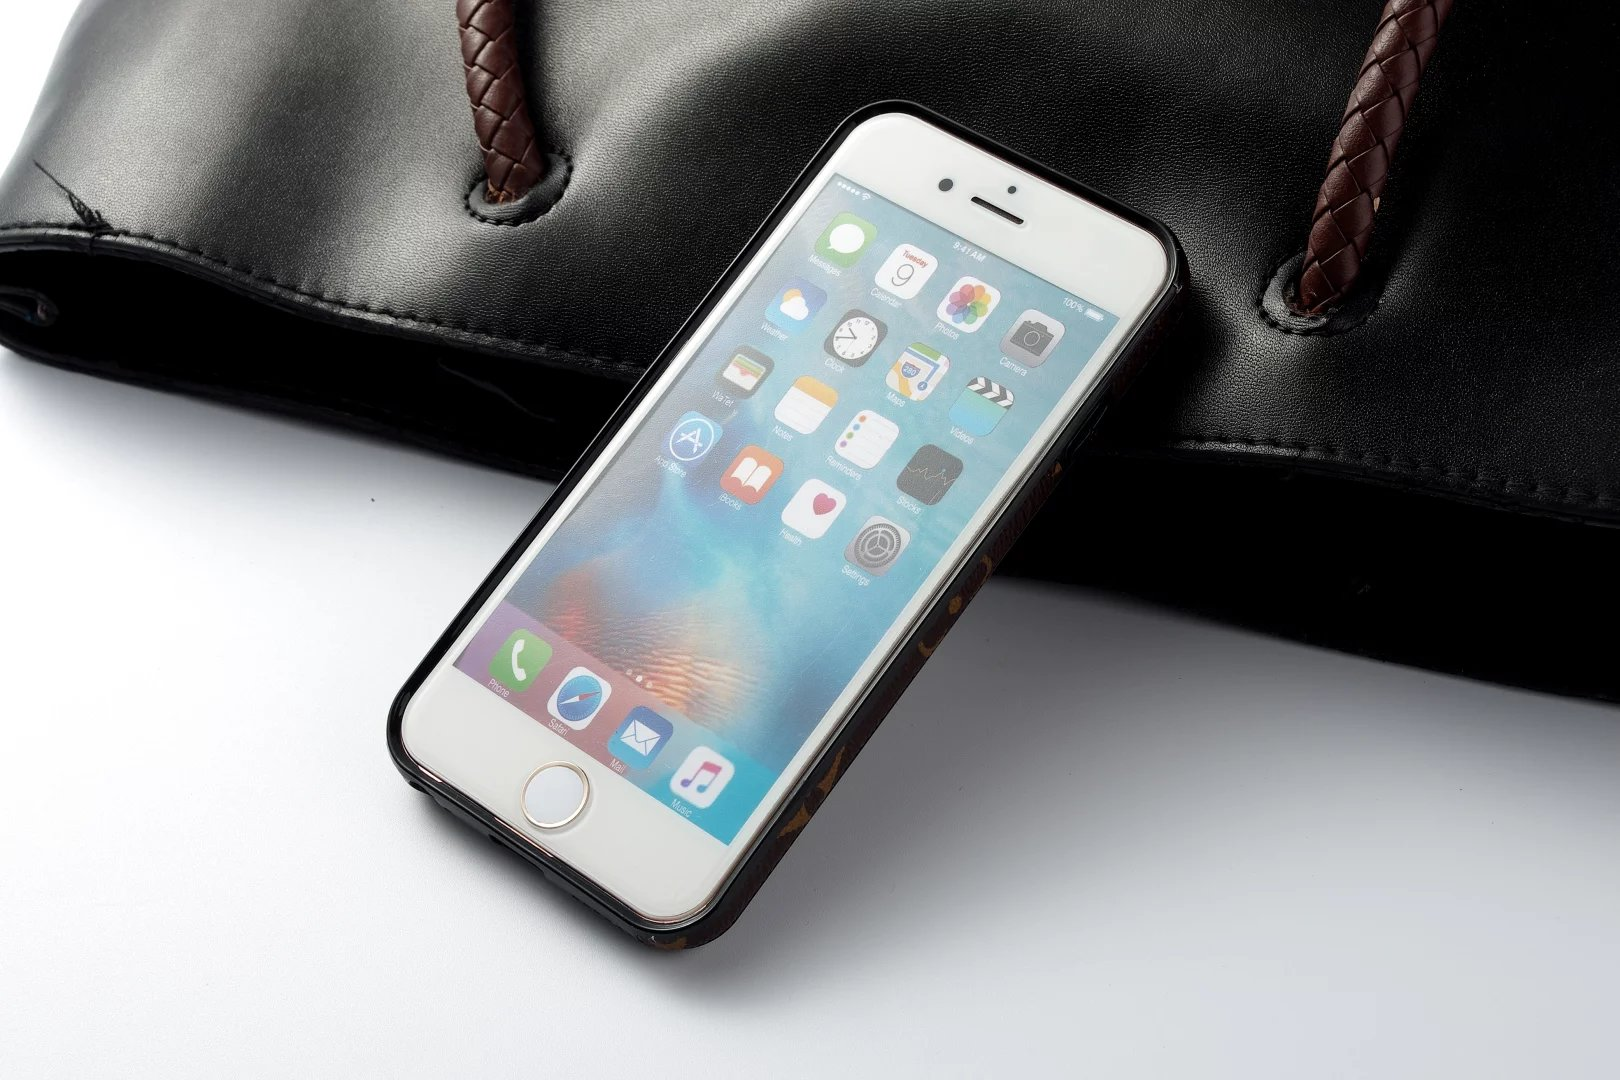 iphone case foto lederhülle iphone Louis Vuitton iphone6 plus hülle handyhüllen marken neues iphone schutzhülle für iphone 6 Plus iphone 6 Plus ilikonhülle handyschale iphone 6 Plus iphone 6 Plus hutzhülle leder